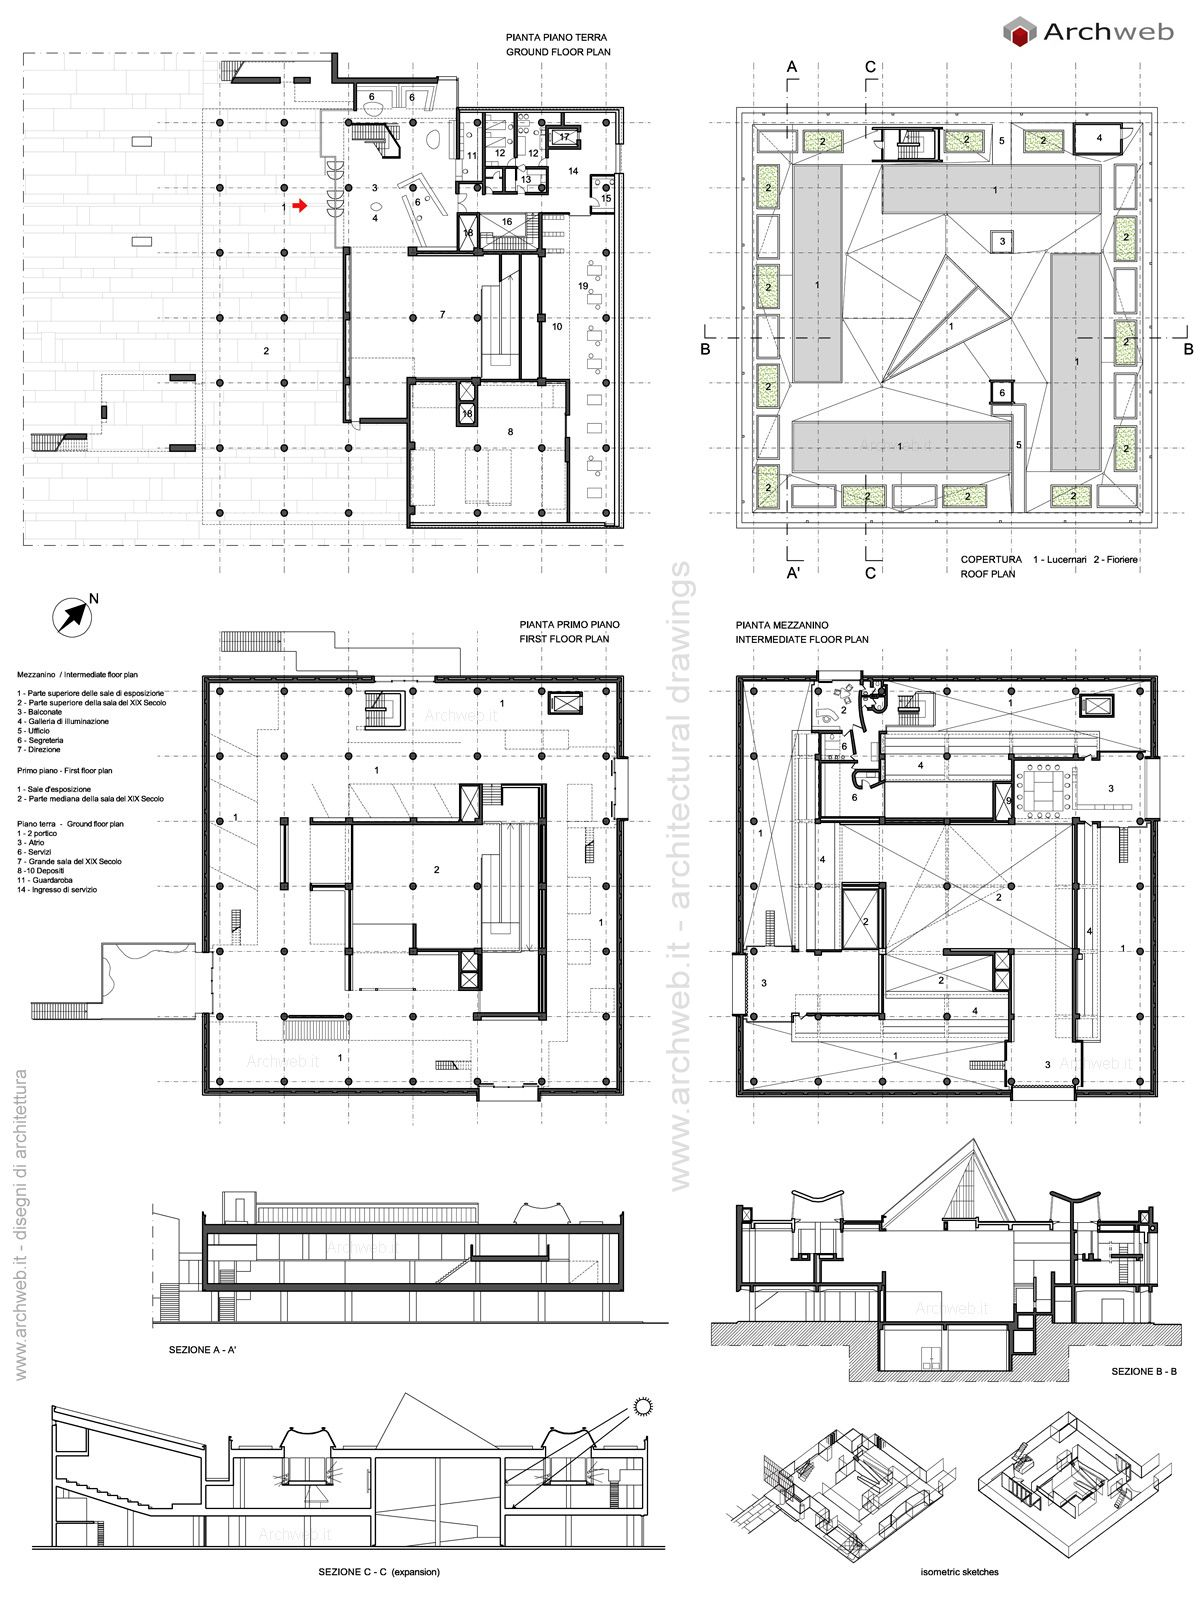 National Museum Of Western Art Tokyo Drawings Plans Museum Plan Museum Exhibition Design Museum Architecture